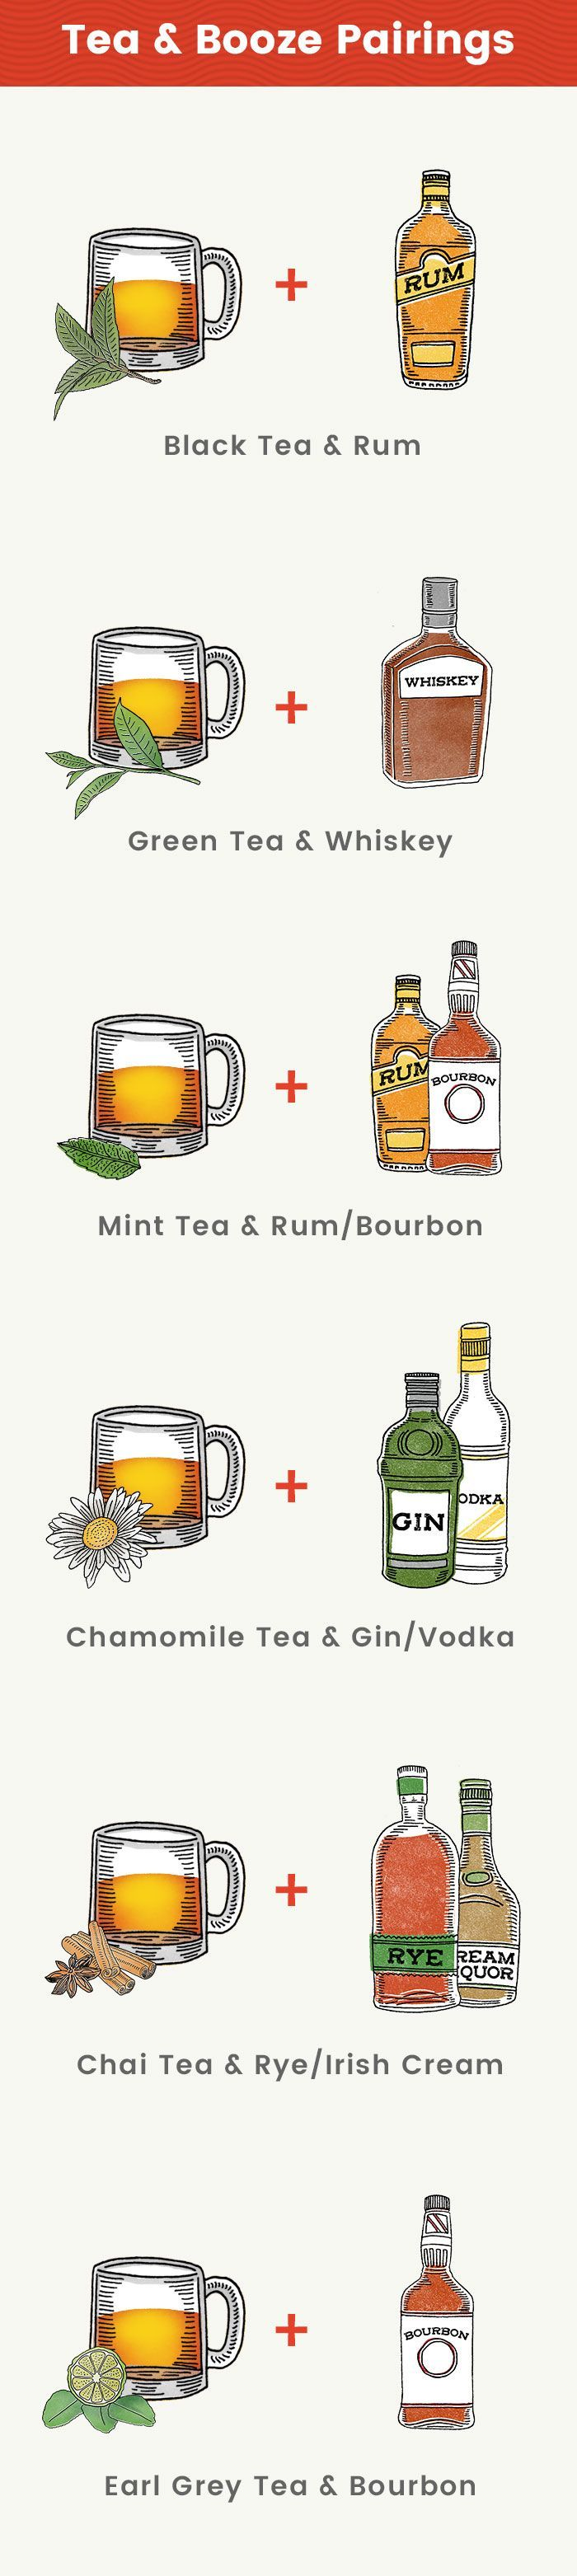 Boose clipart bourbon Creativity we classic your spiking